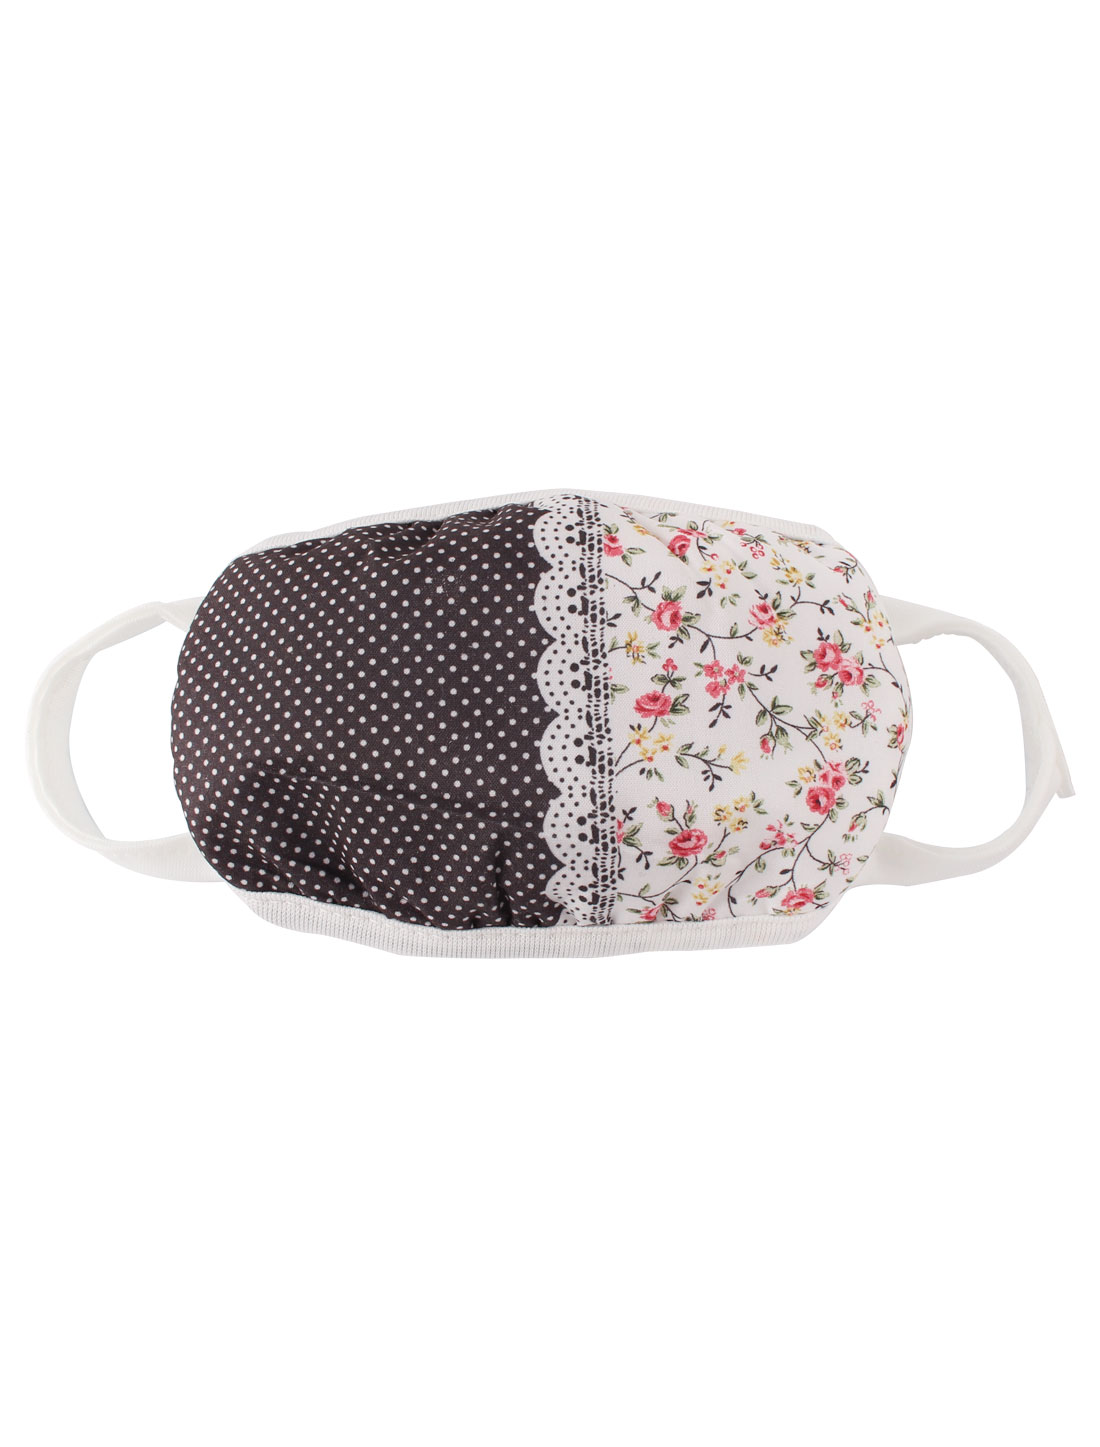 Lady Flower Pattern Anti Dust Face Mouth Mask Cover Respirator Protector Black